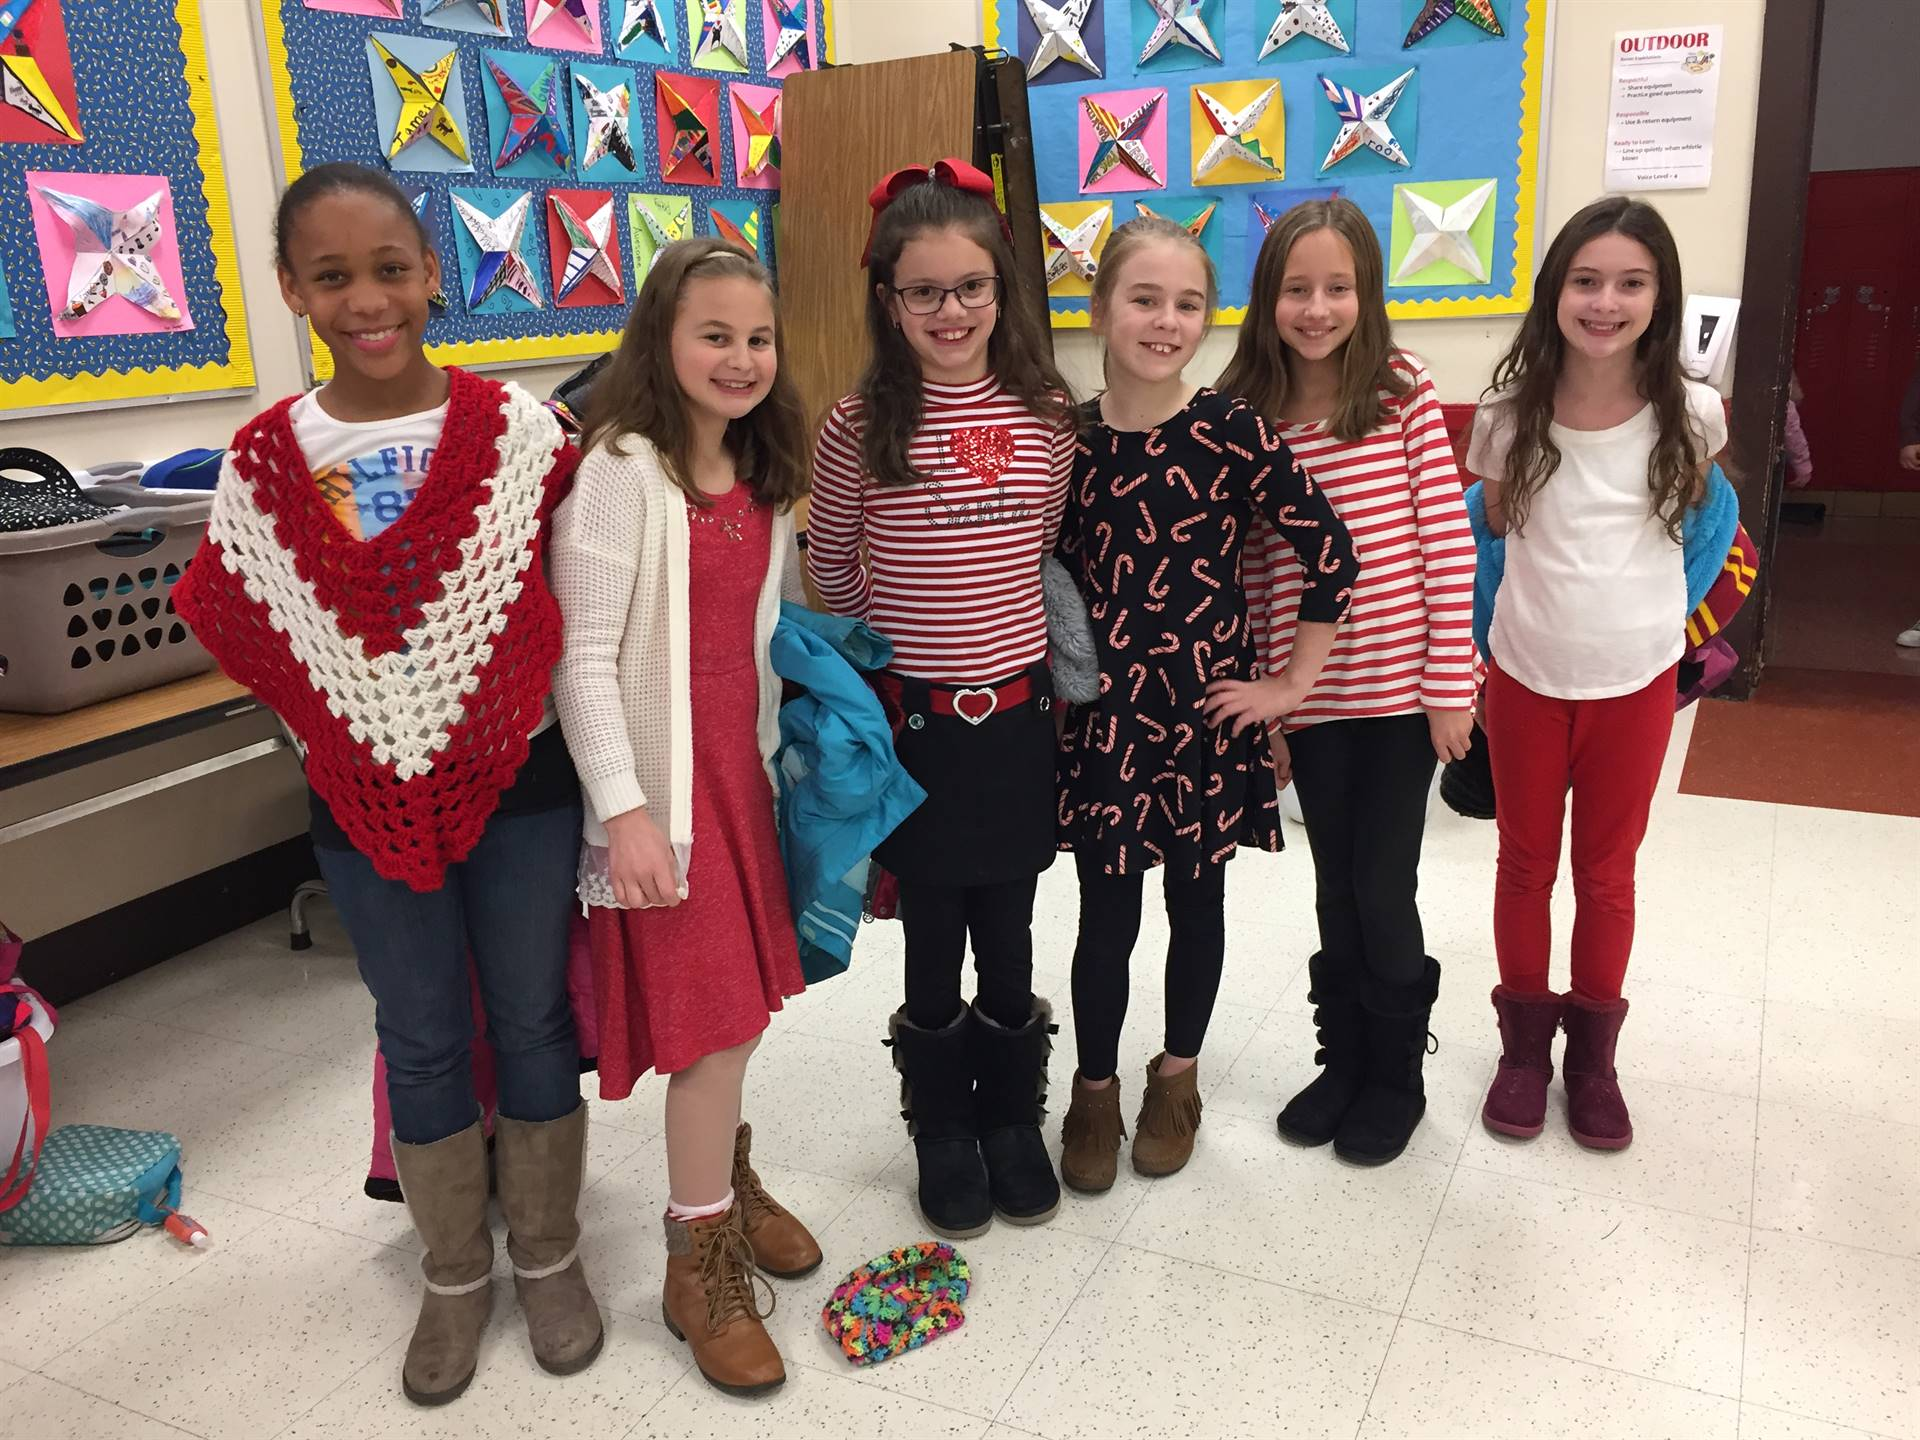 More 4th grade red sweaters